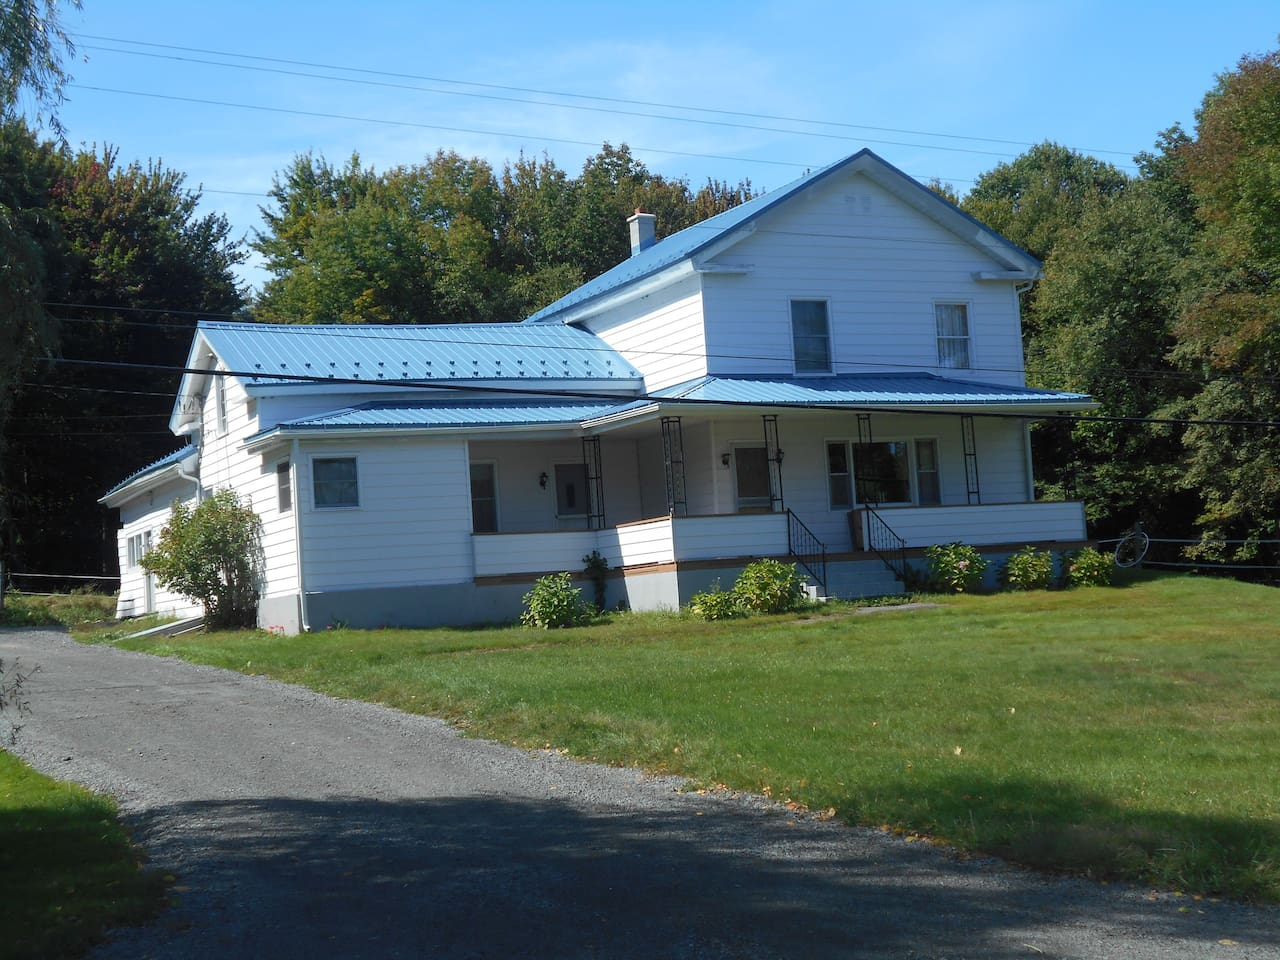 5 bedroom farmhouse houses for rent in honesdale for 5 bedroom farmhouse